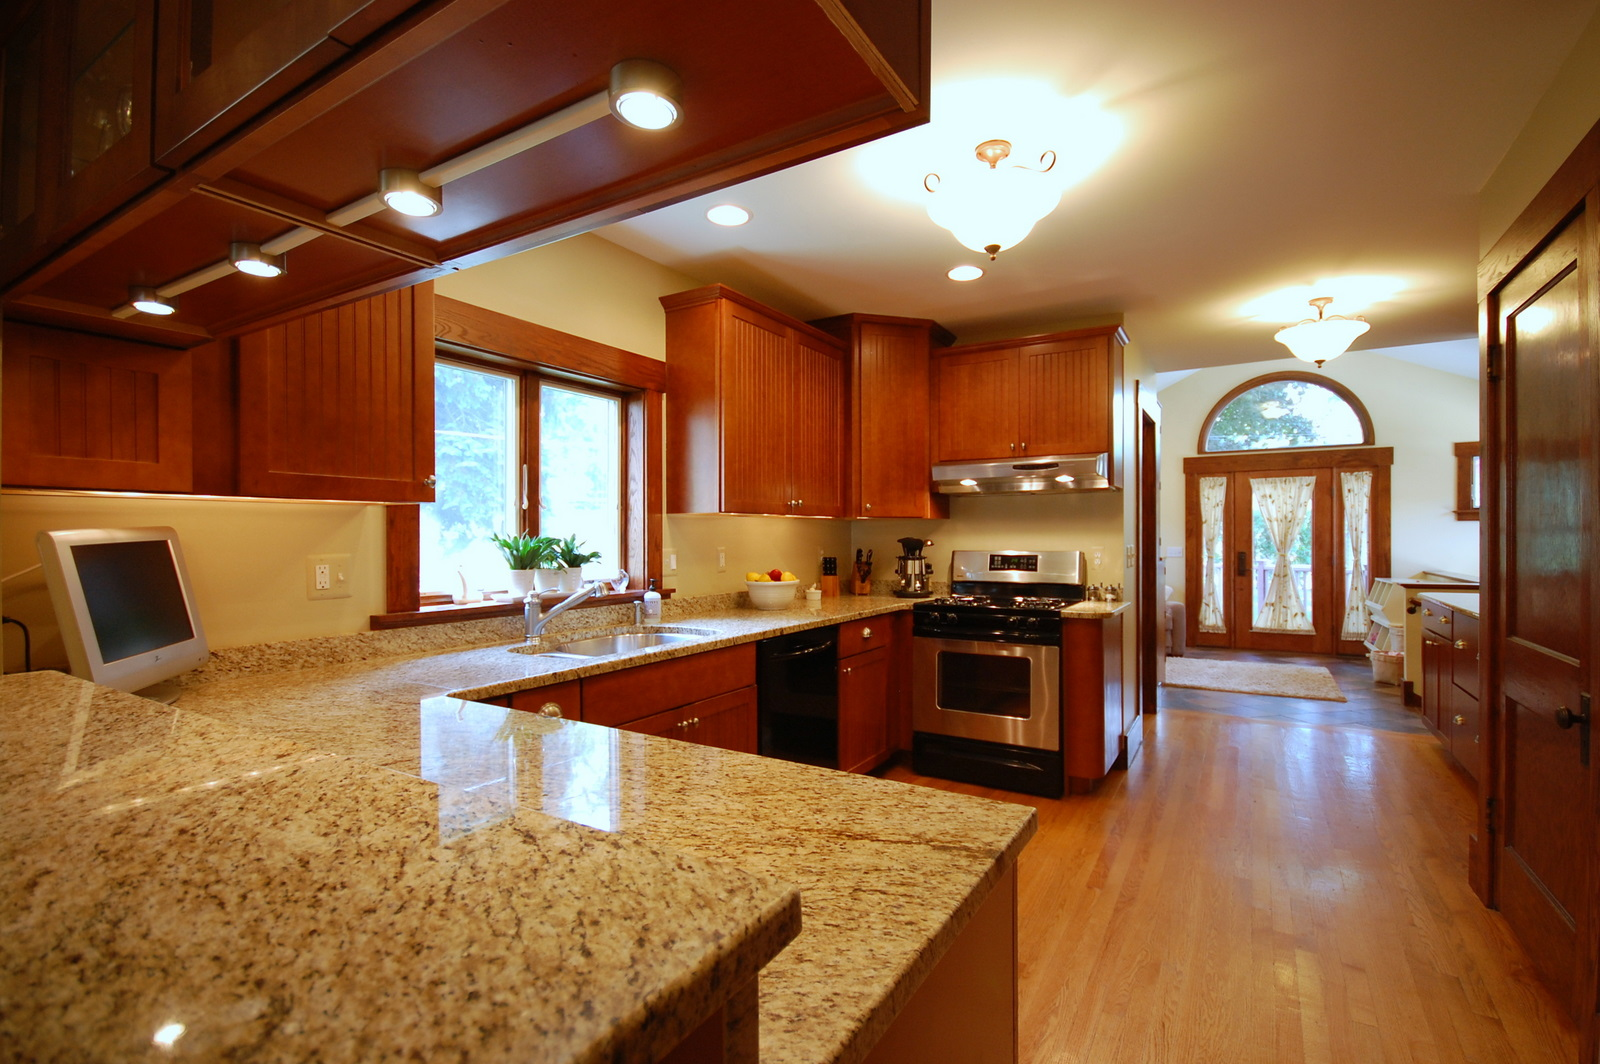 Granite installation jmarvinhandyman for Kitchen counter design ideas